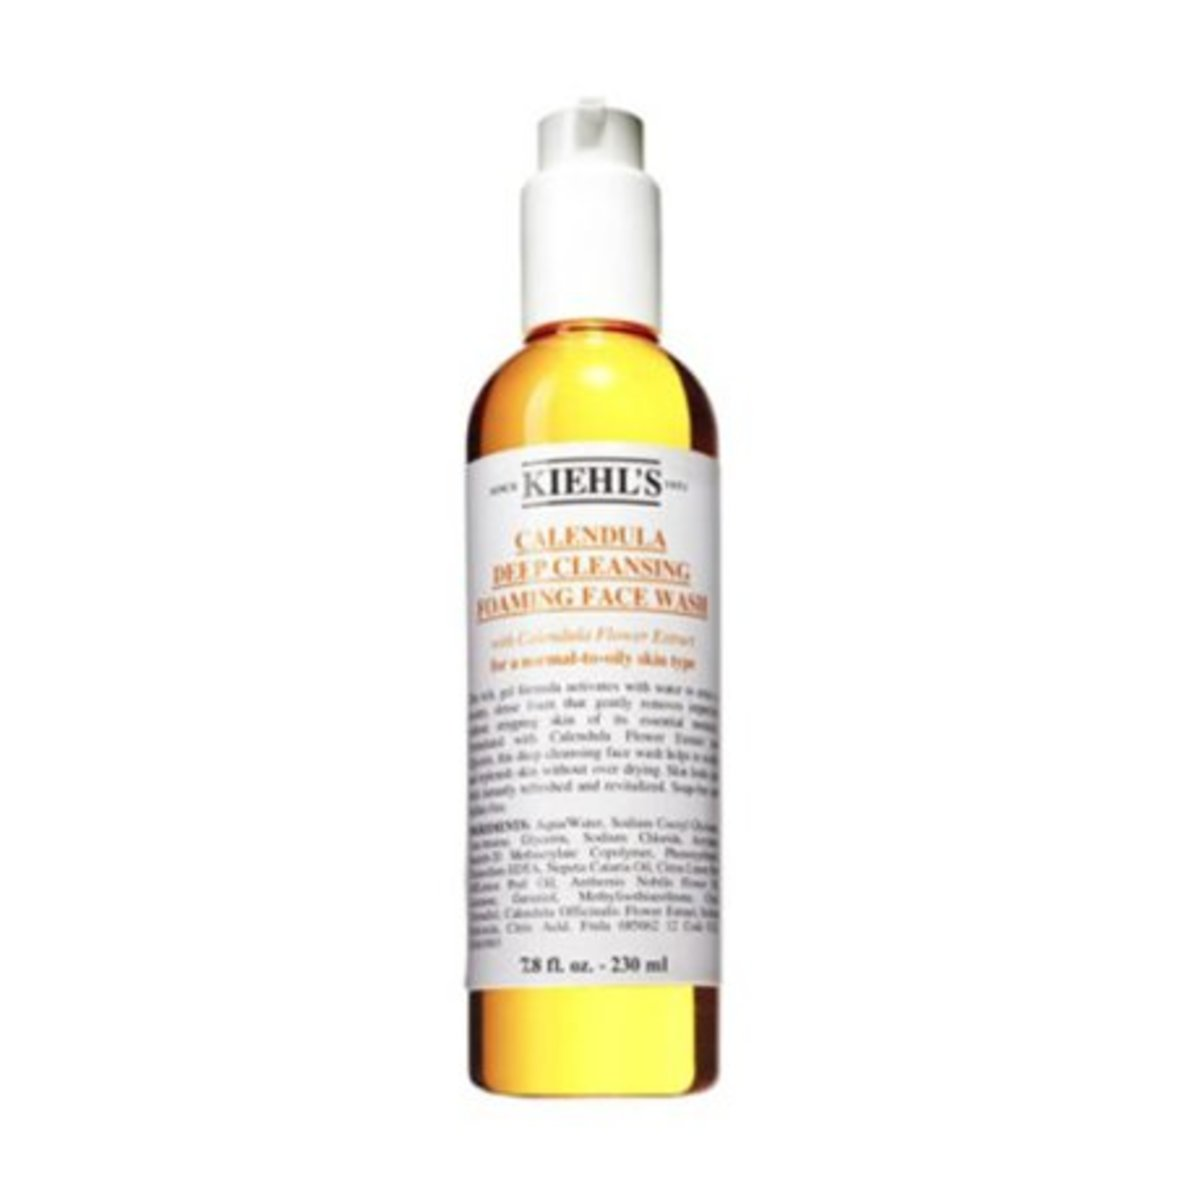 Calendula Deep Cleansing Foaming Face Wash [parallel import]